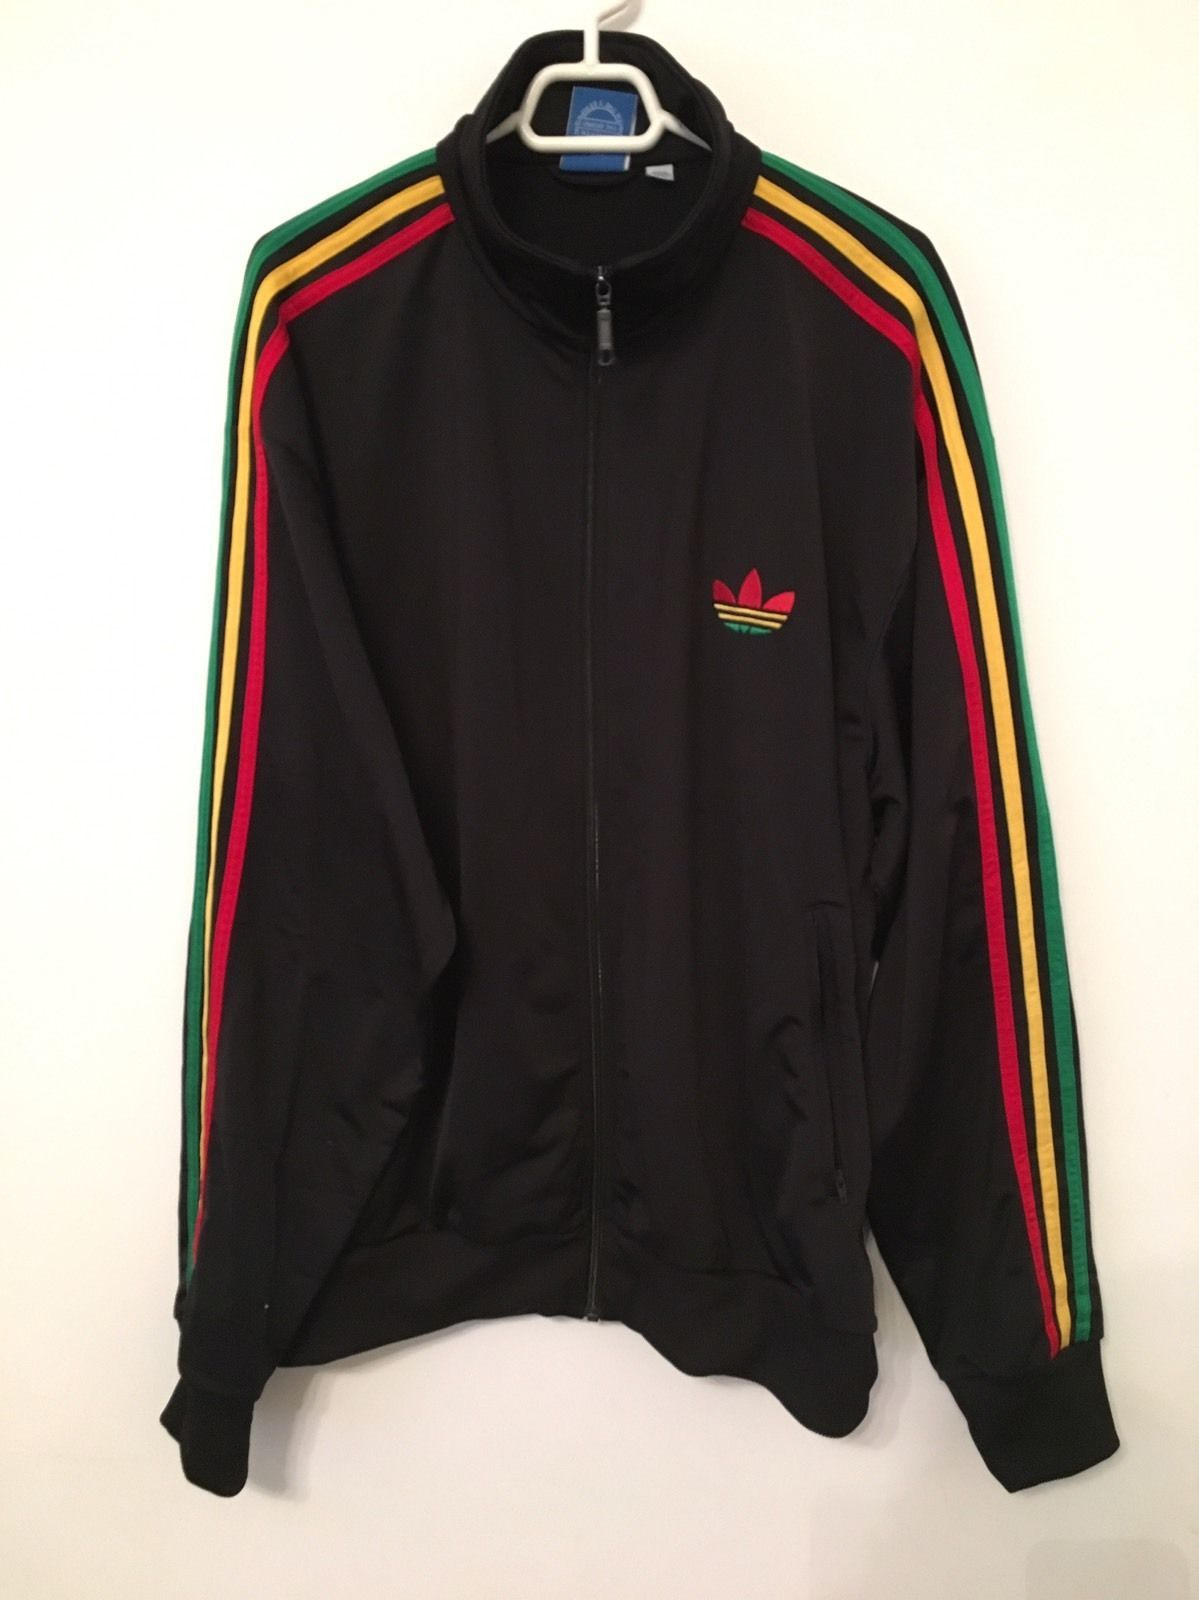 Adidas Originals Adi firebird Track Top Jacket Rasta Jamaica